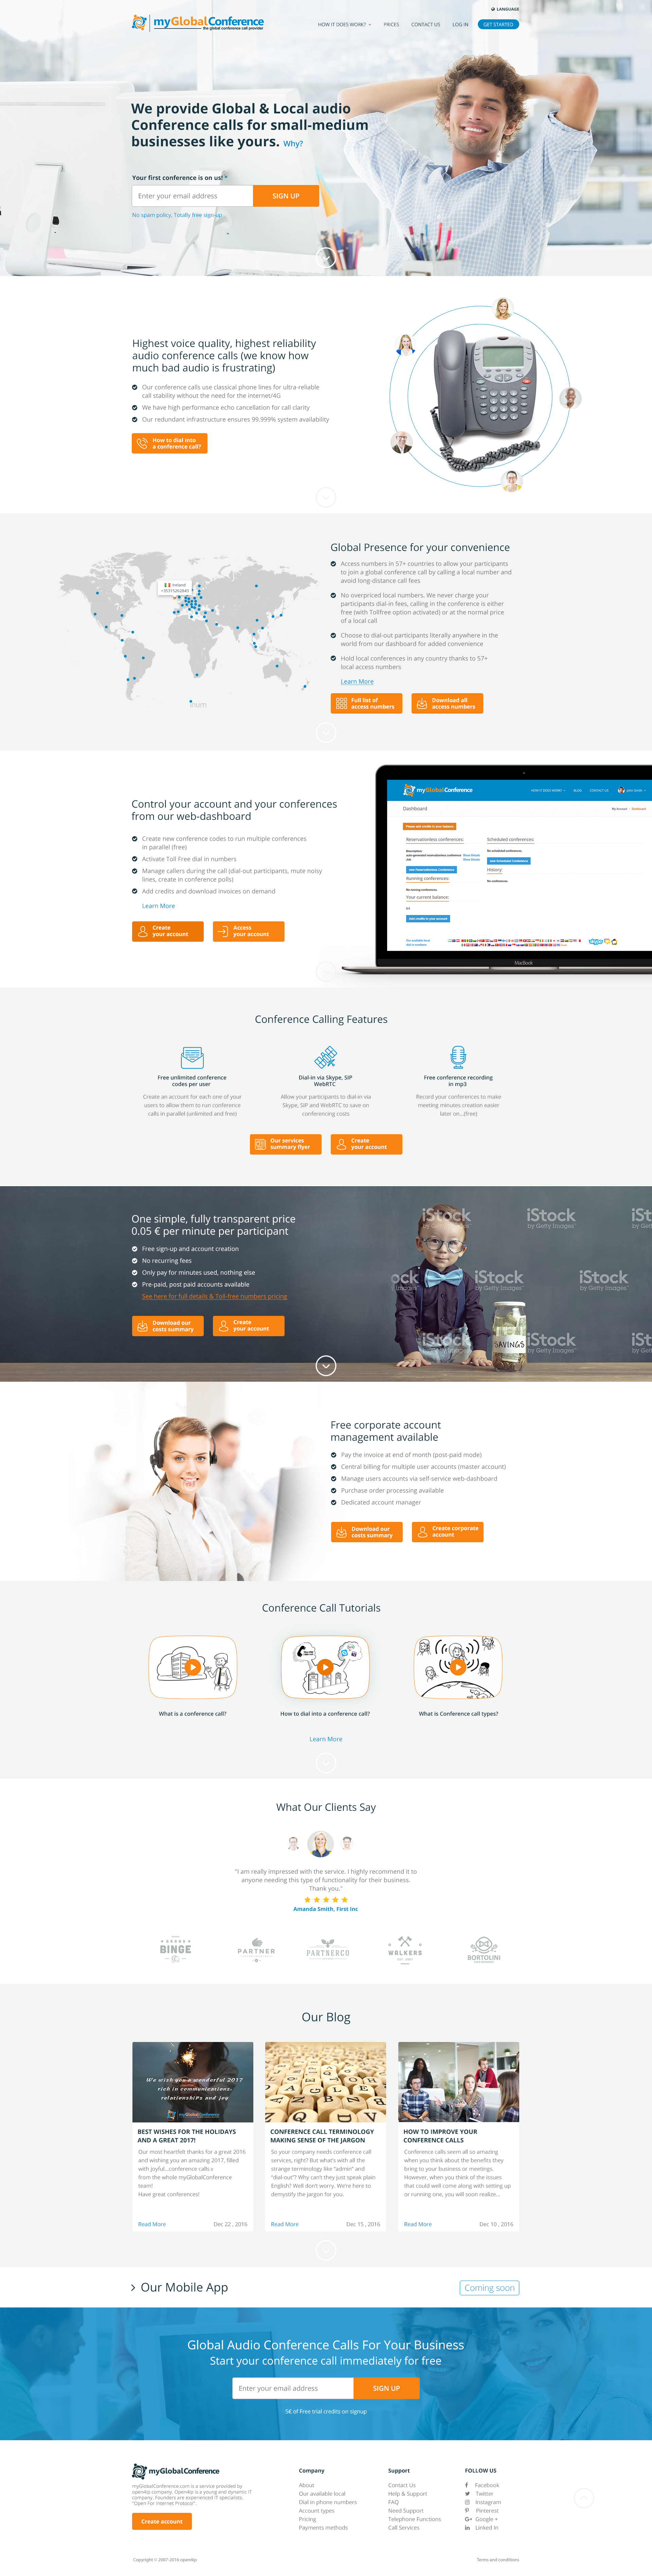 Awe-inducing webpage for conference call service provider